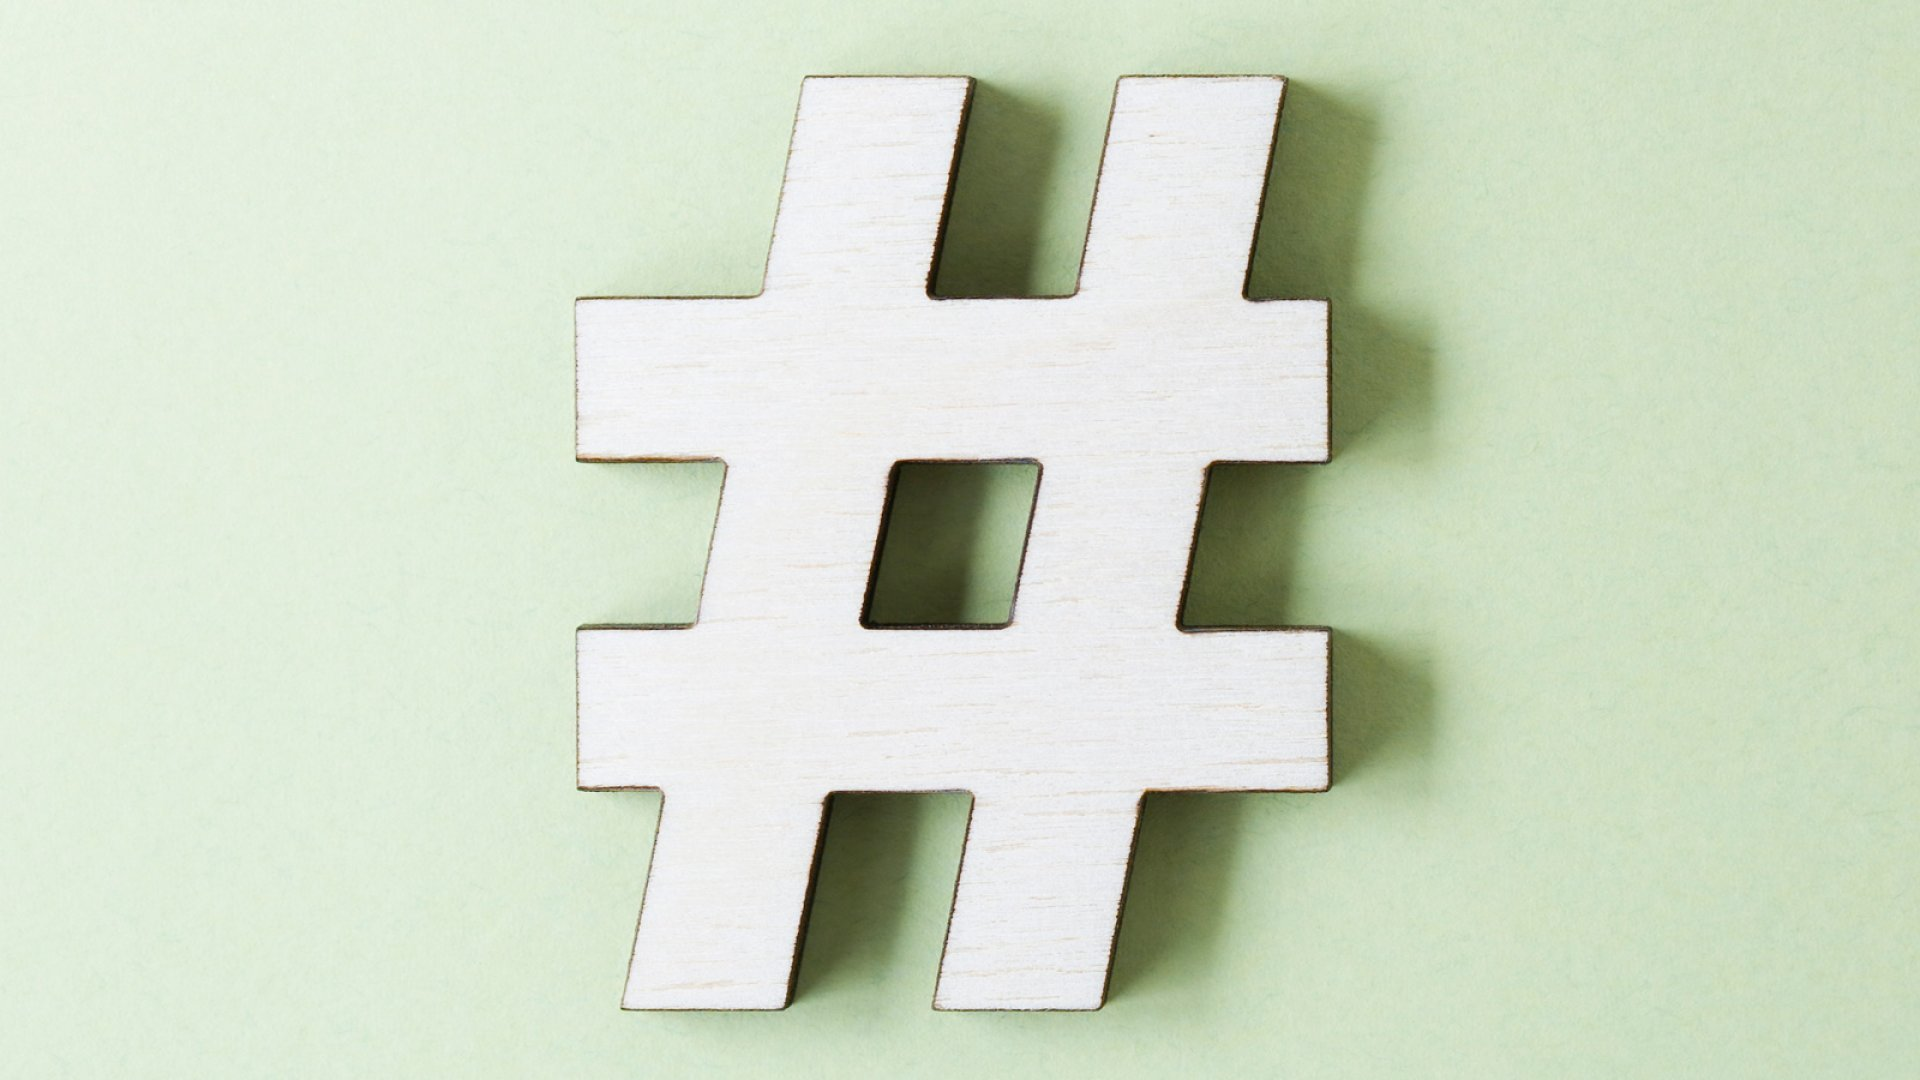 The Science Behind Using Hashtags: Number, Type, and More